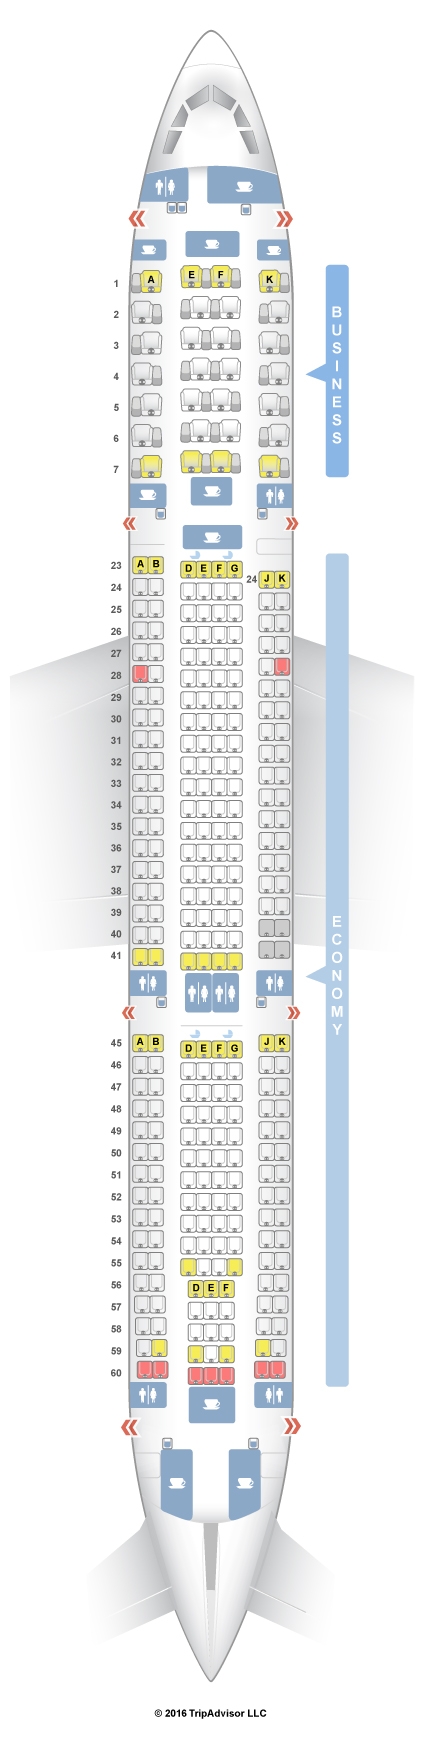 Business class seat survey